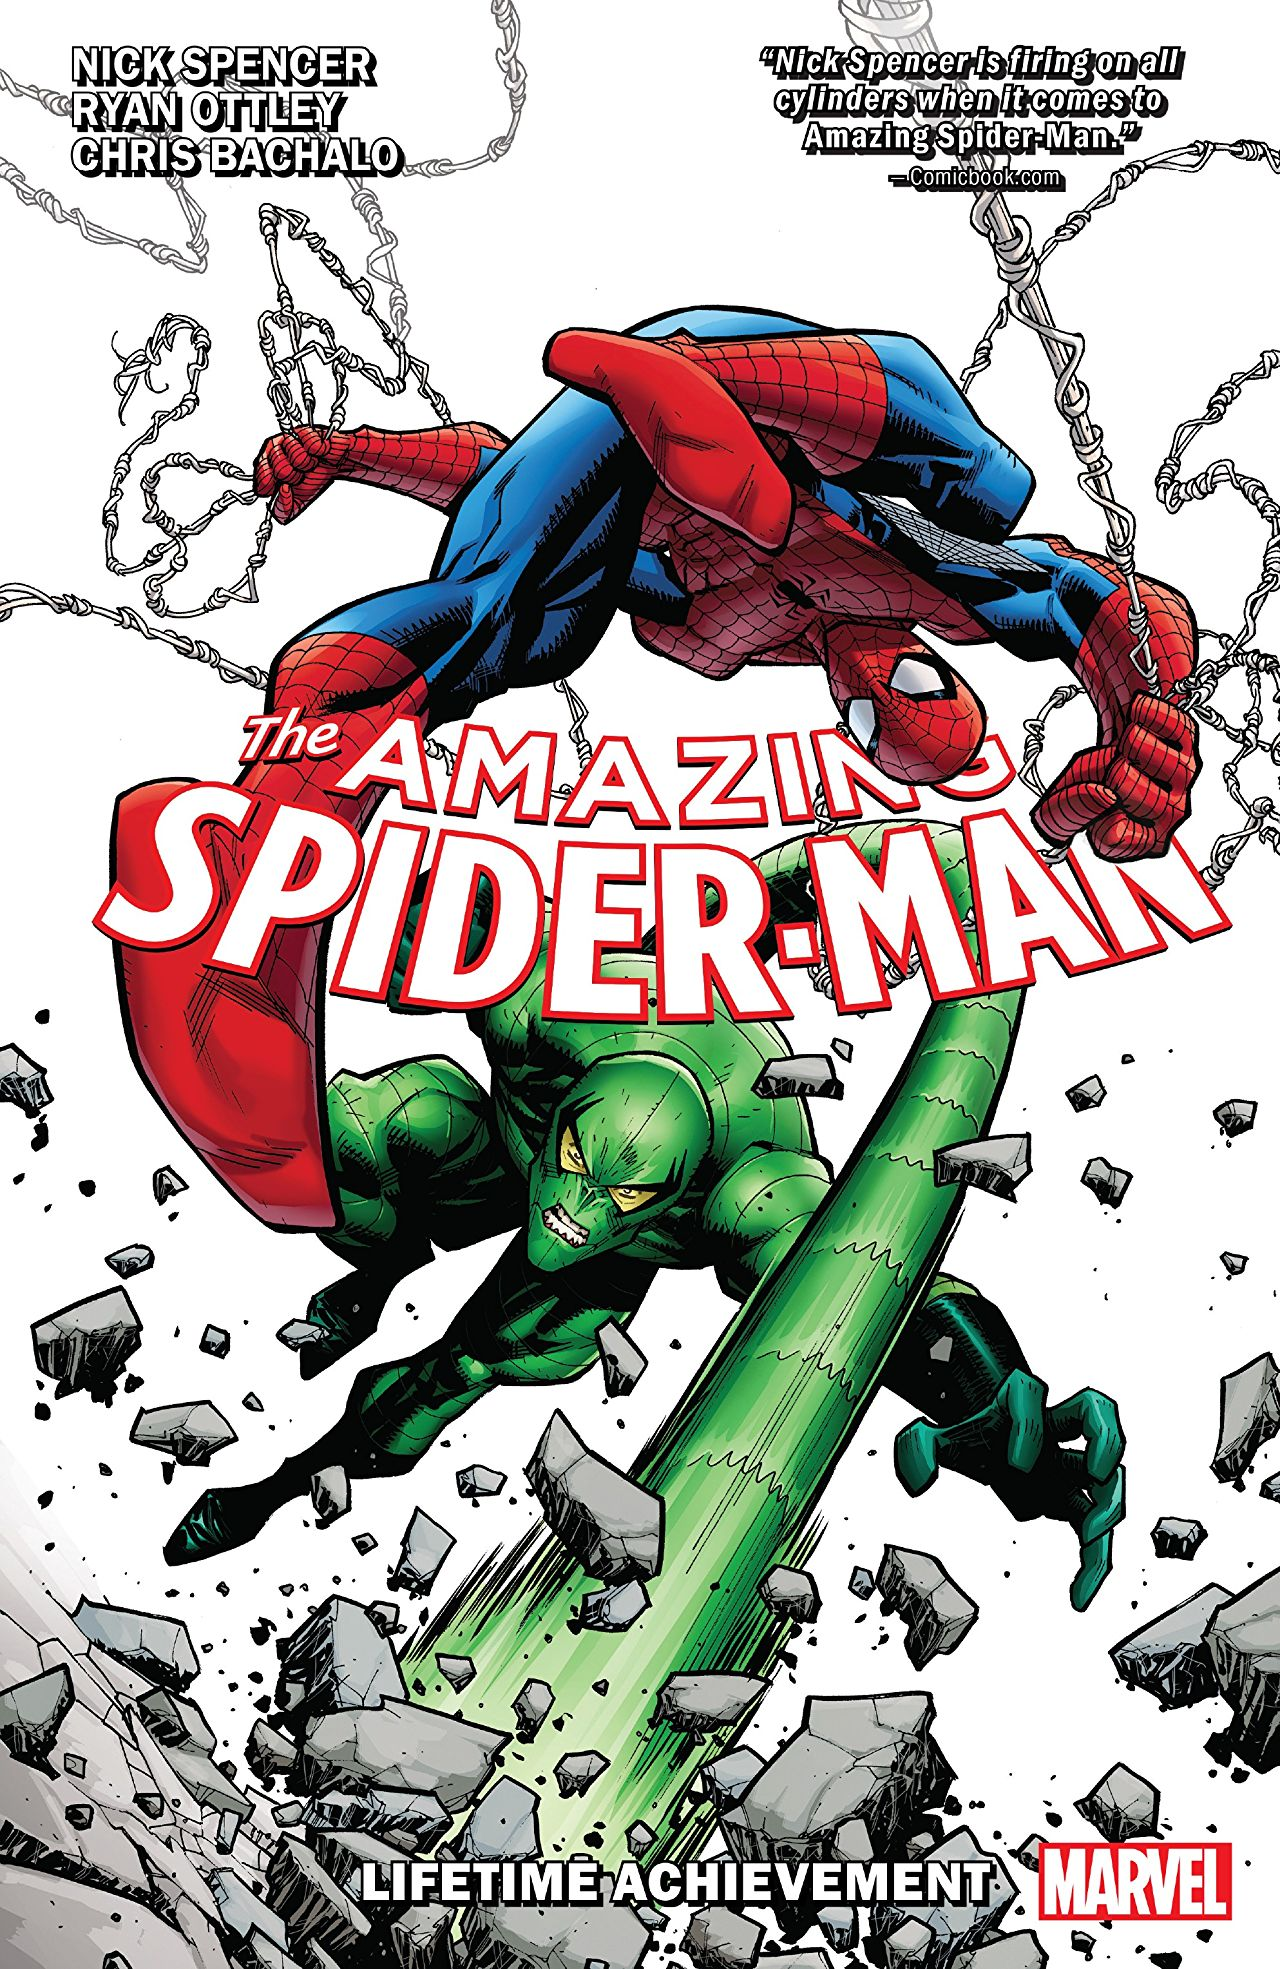 Amazing Spider-Man by Nick Spencer Vol. 3: Lifetime Achievement (Trade Paperback)